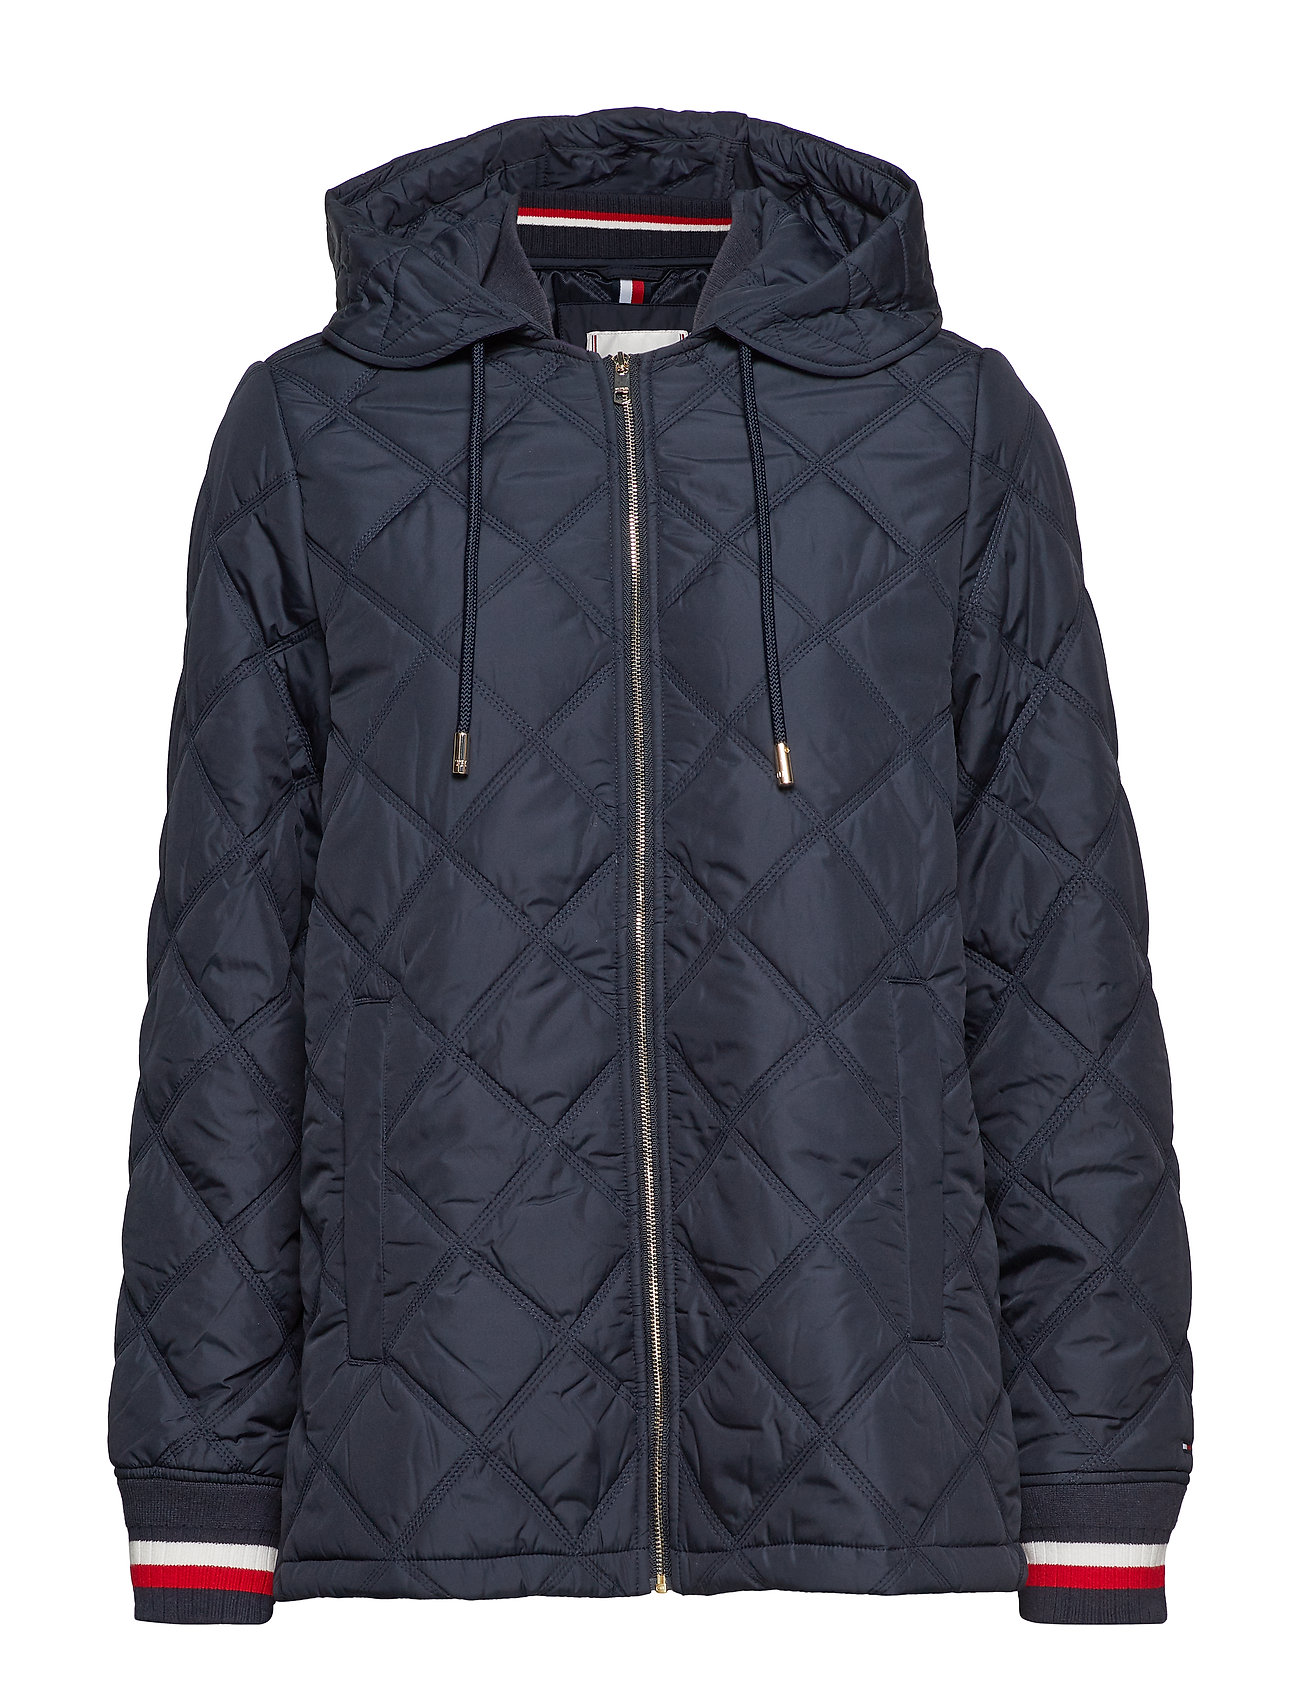 Tommy Hilfiger IVAN QUILTED JACKET - SKY CAPTAIN